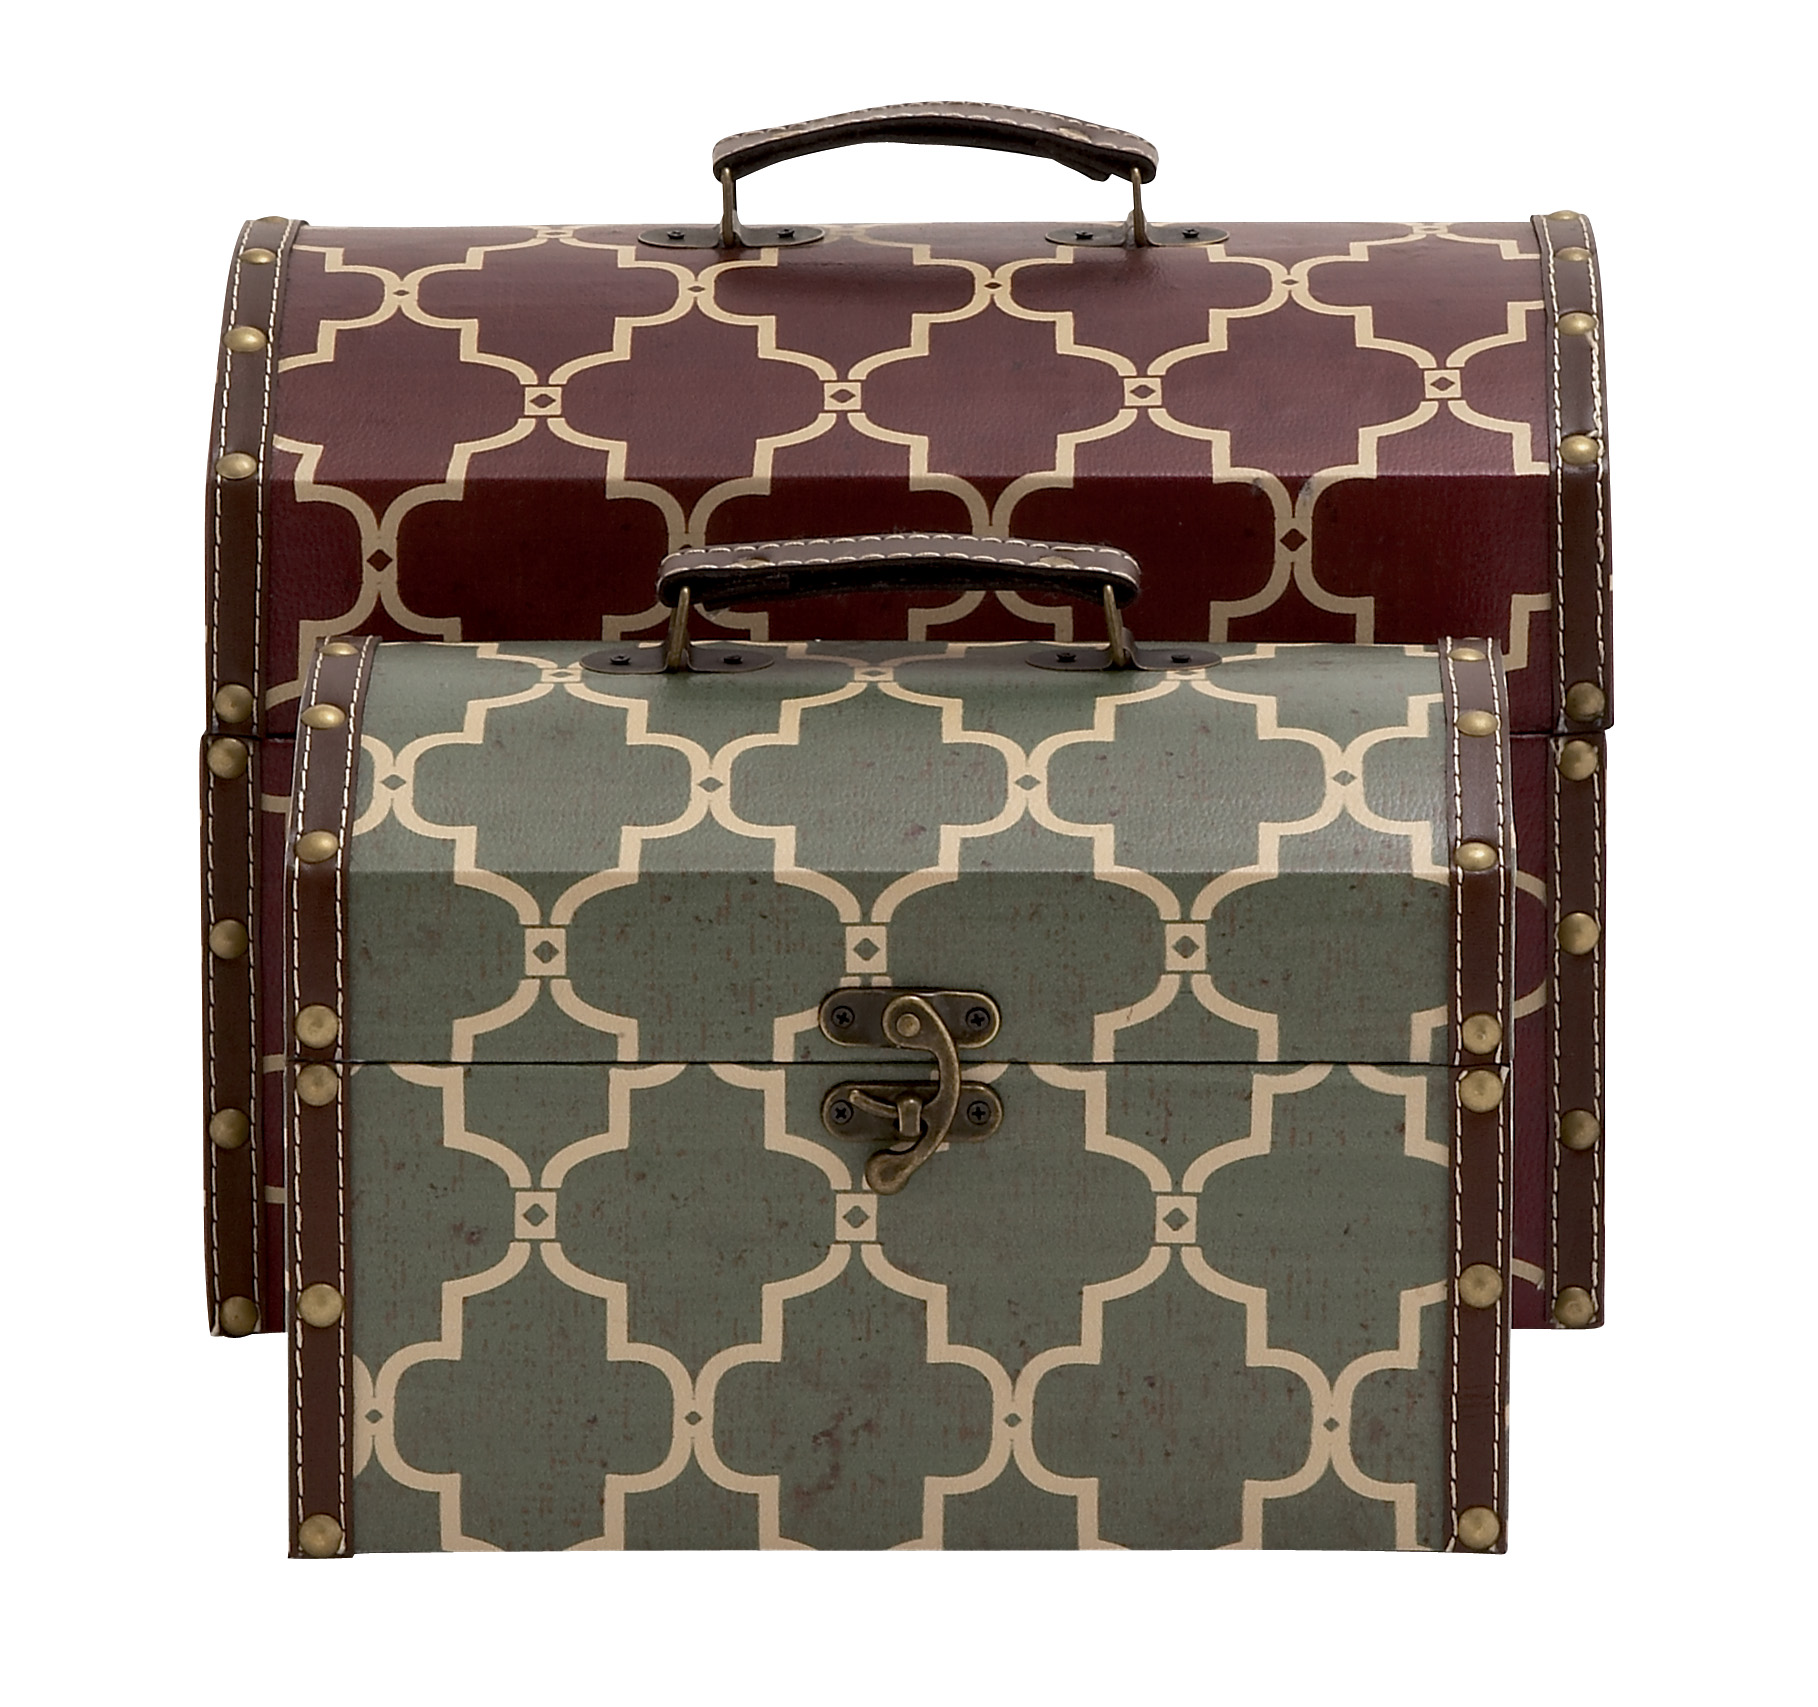 Woodland Imports 2 Piece Stylish and Vintage Themed Wood Vinyl Box Set